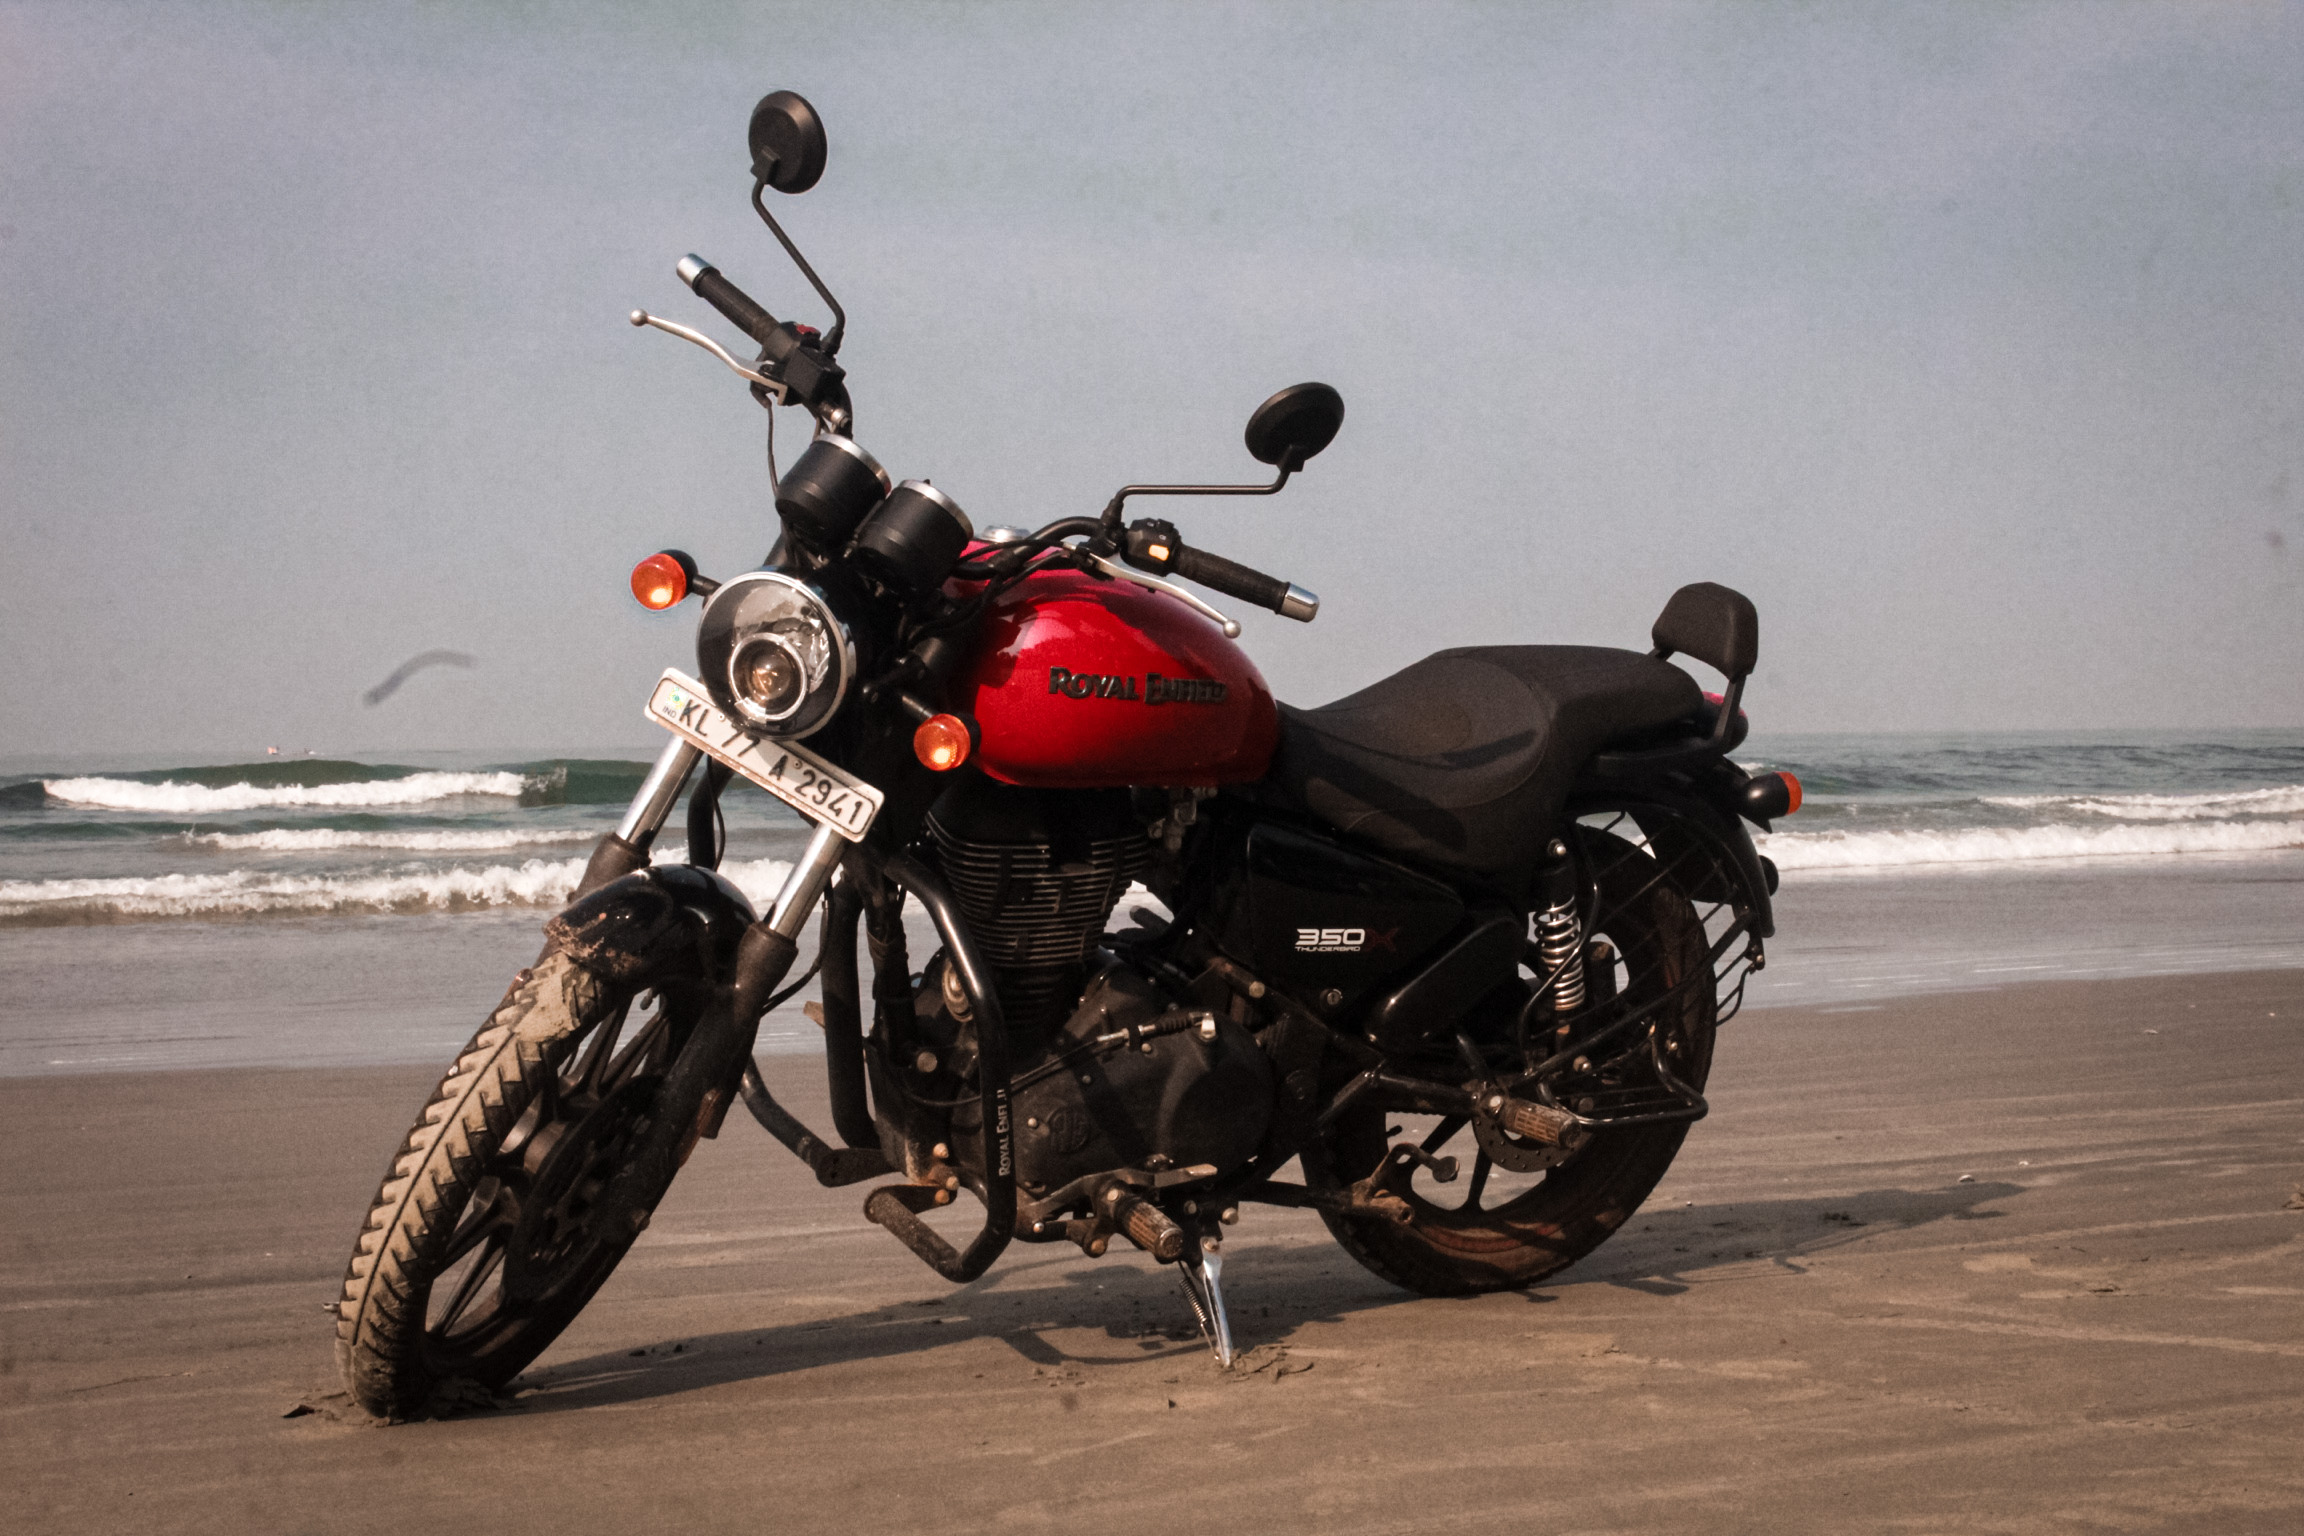 motorbike on the beach side